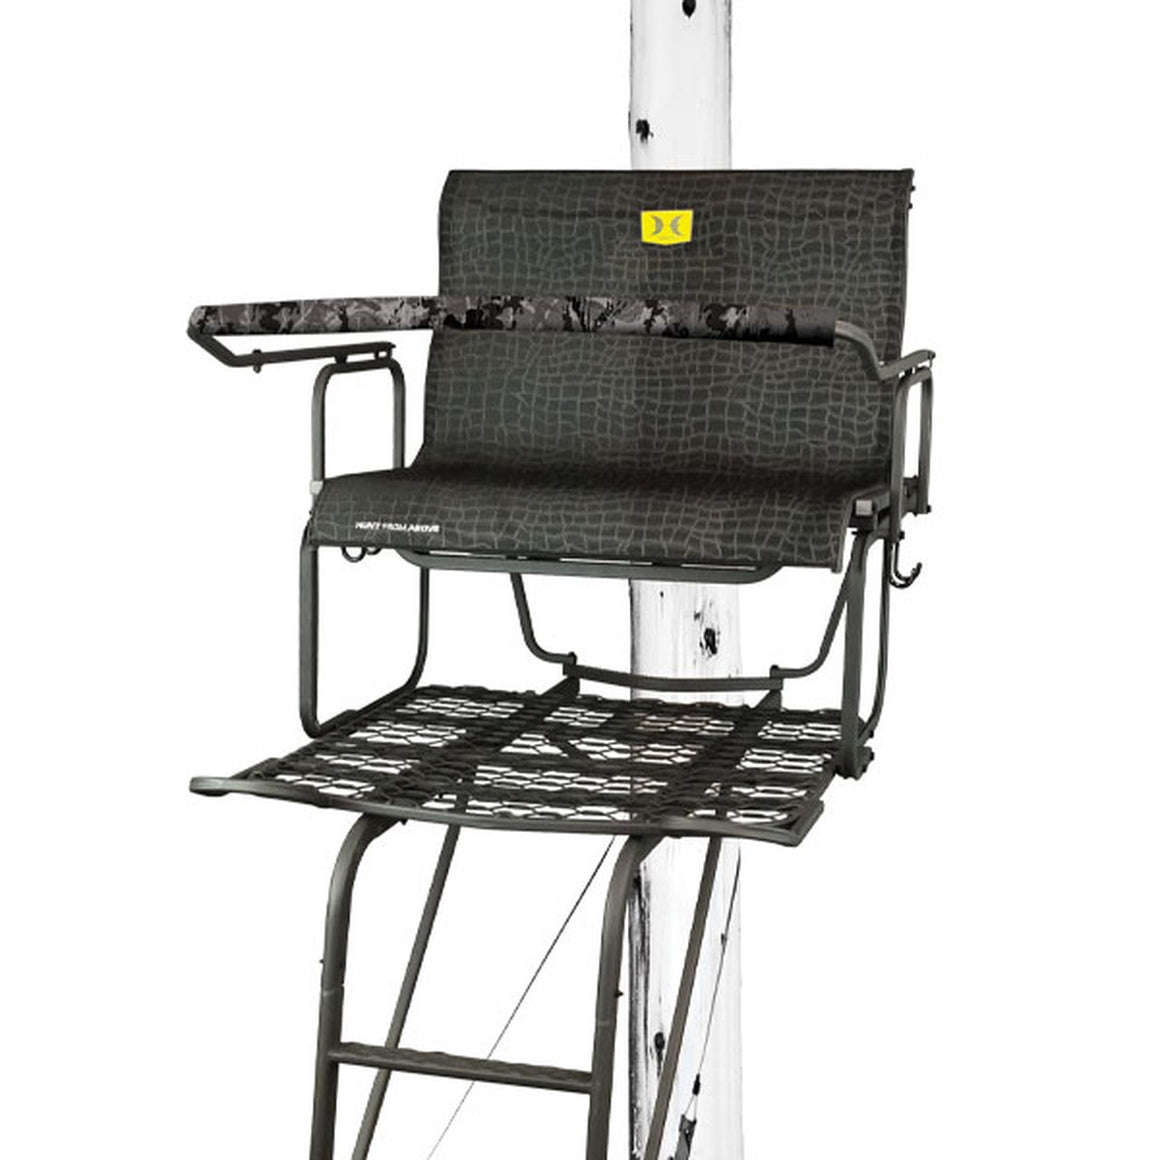 Super Maxx Ladder Stand